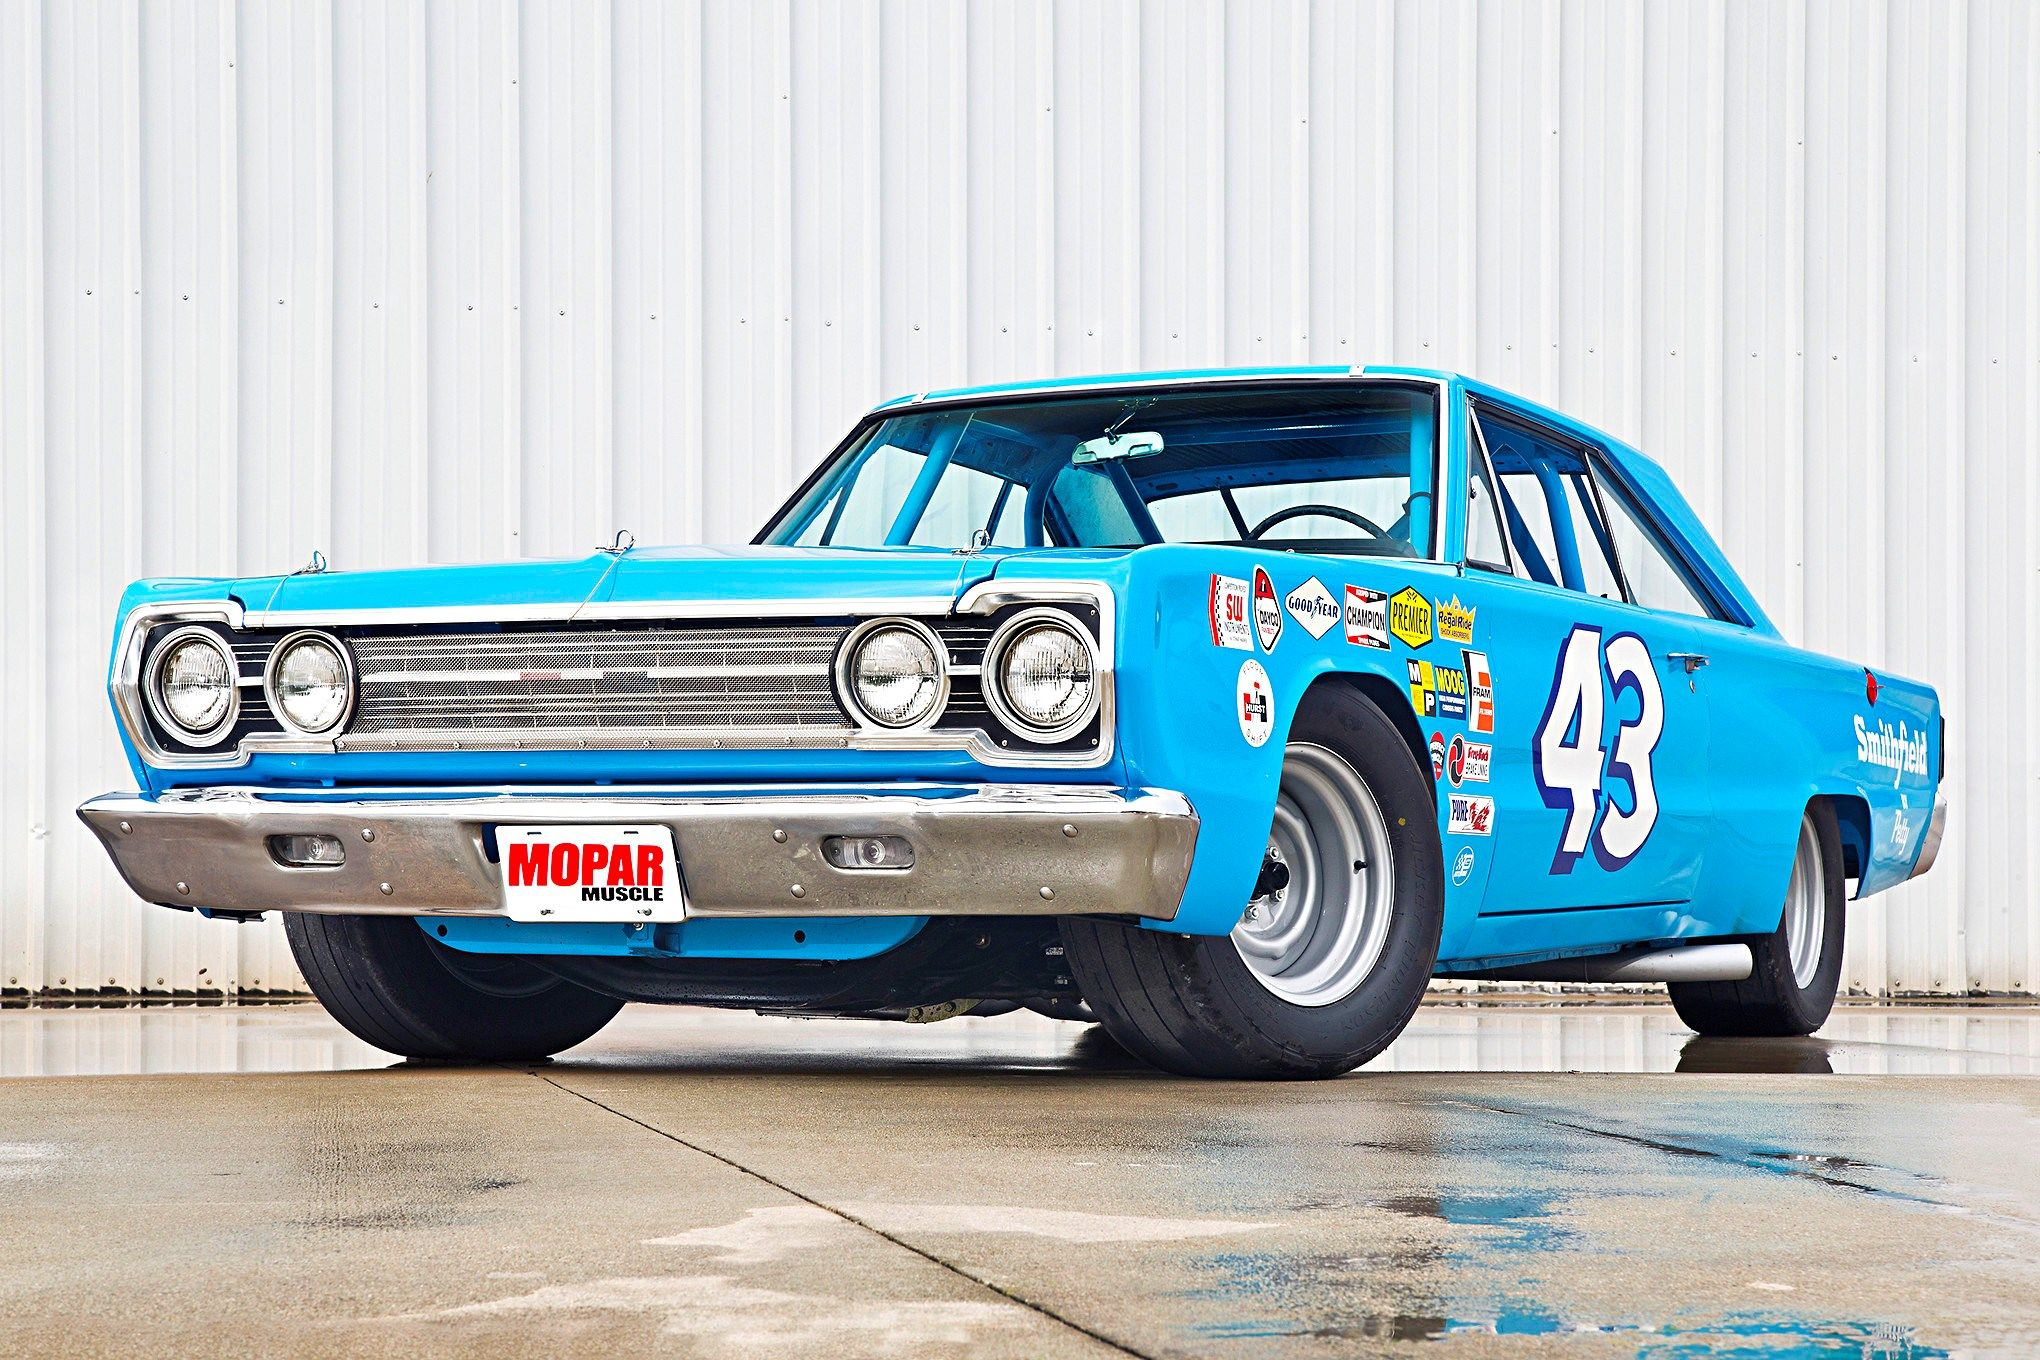 Free Wallpaper And Screensavers For 1967 Plymouth Belvedere 1967 Plymouth Belvedere Category Plymouth Belvedere Plymouth Classic Cars